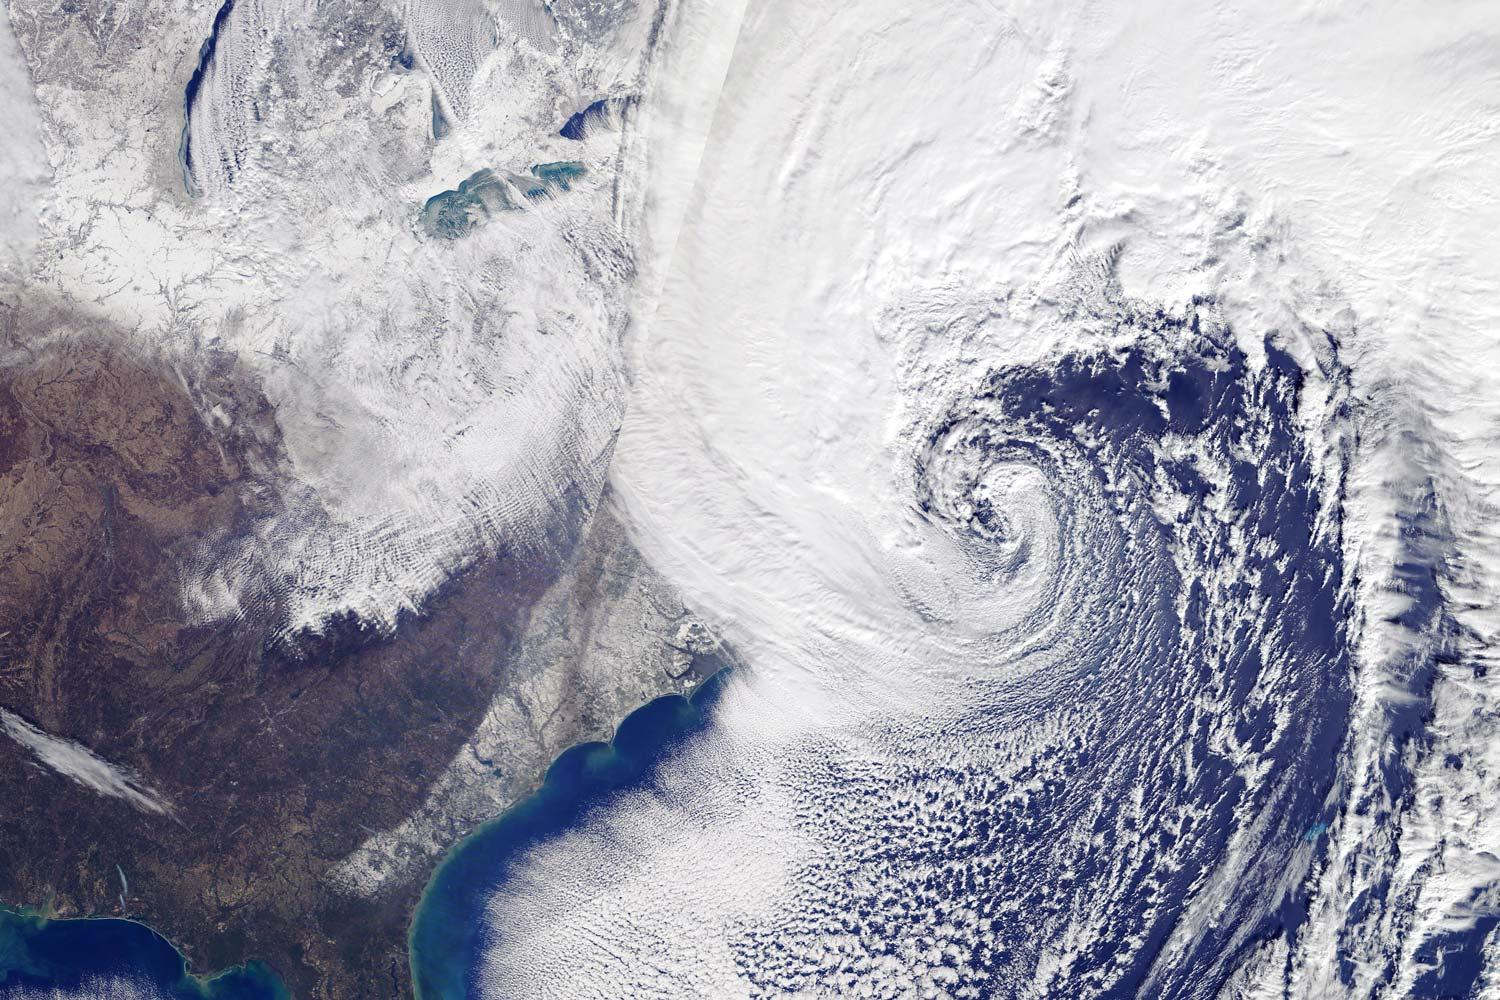 A fast-moving winter storm hit the eastern United States during the first week of 2018. Here's the view from a NASA Earth observing satellite.